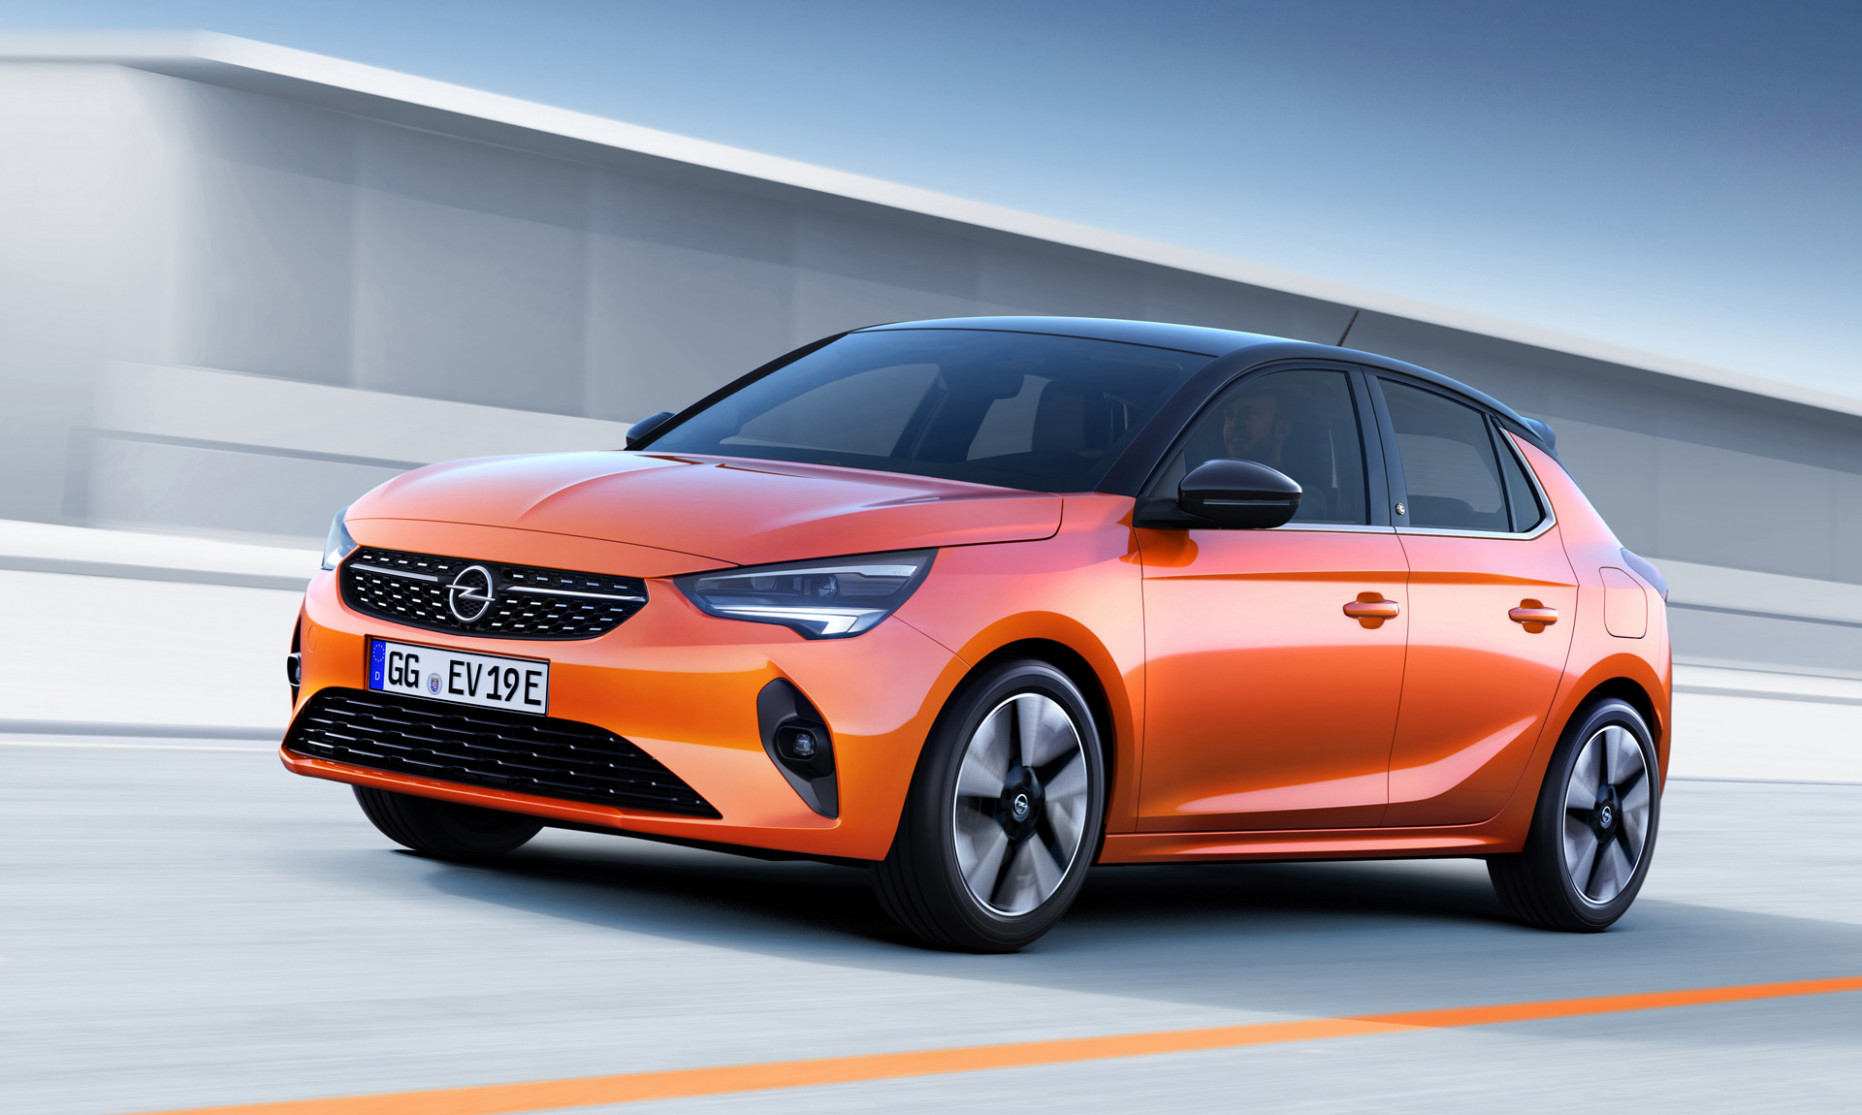 Opel's first car post GM is the 9 Corsa-e electric hatch